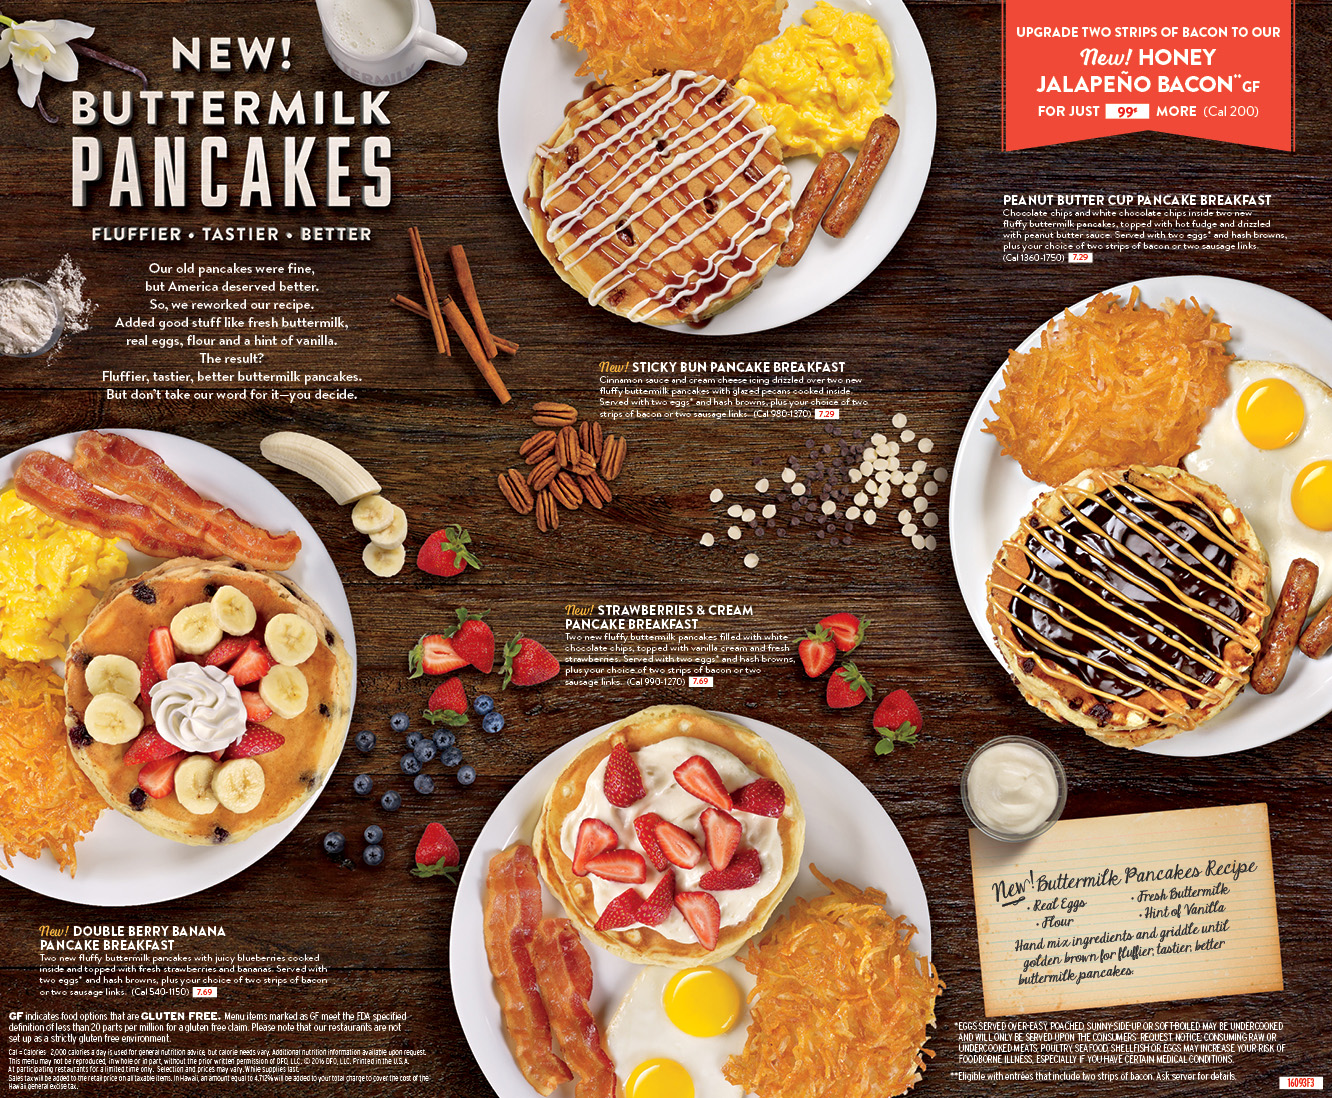 Denny's Delicious New Stacks Have Been Transformed with Pure Ingredients and Classic Flavors for a Bigger, Better and Tastier Pancake